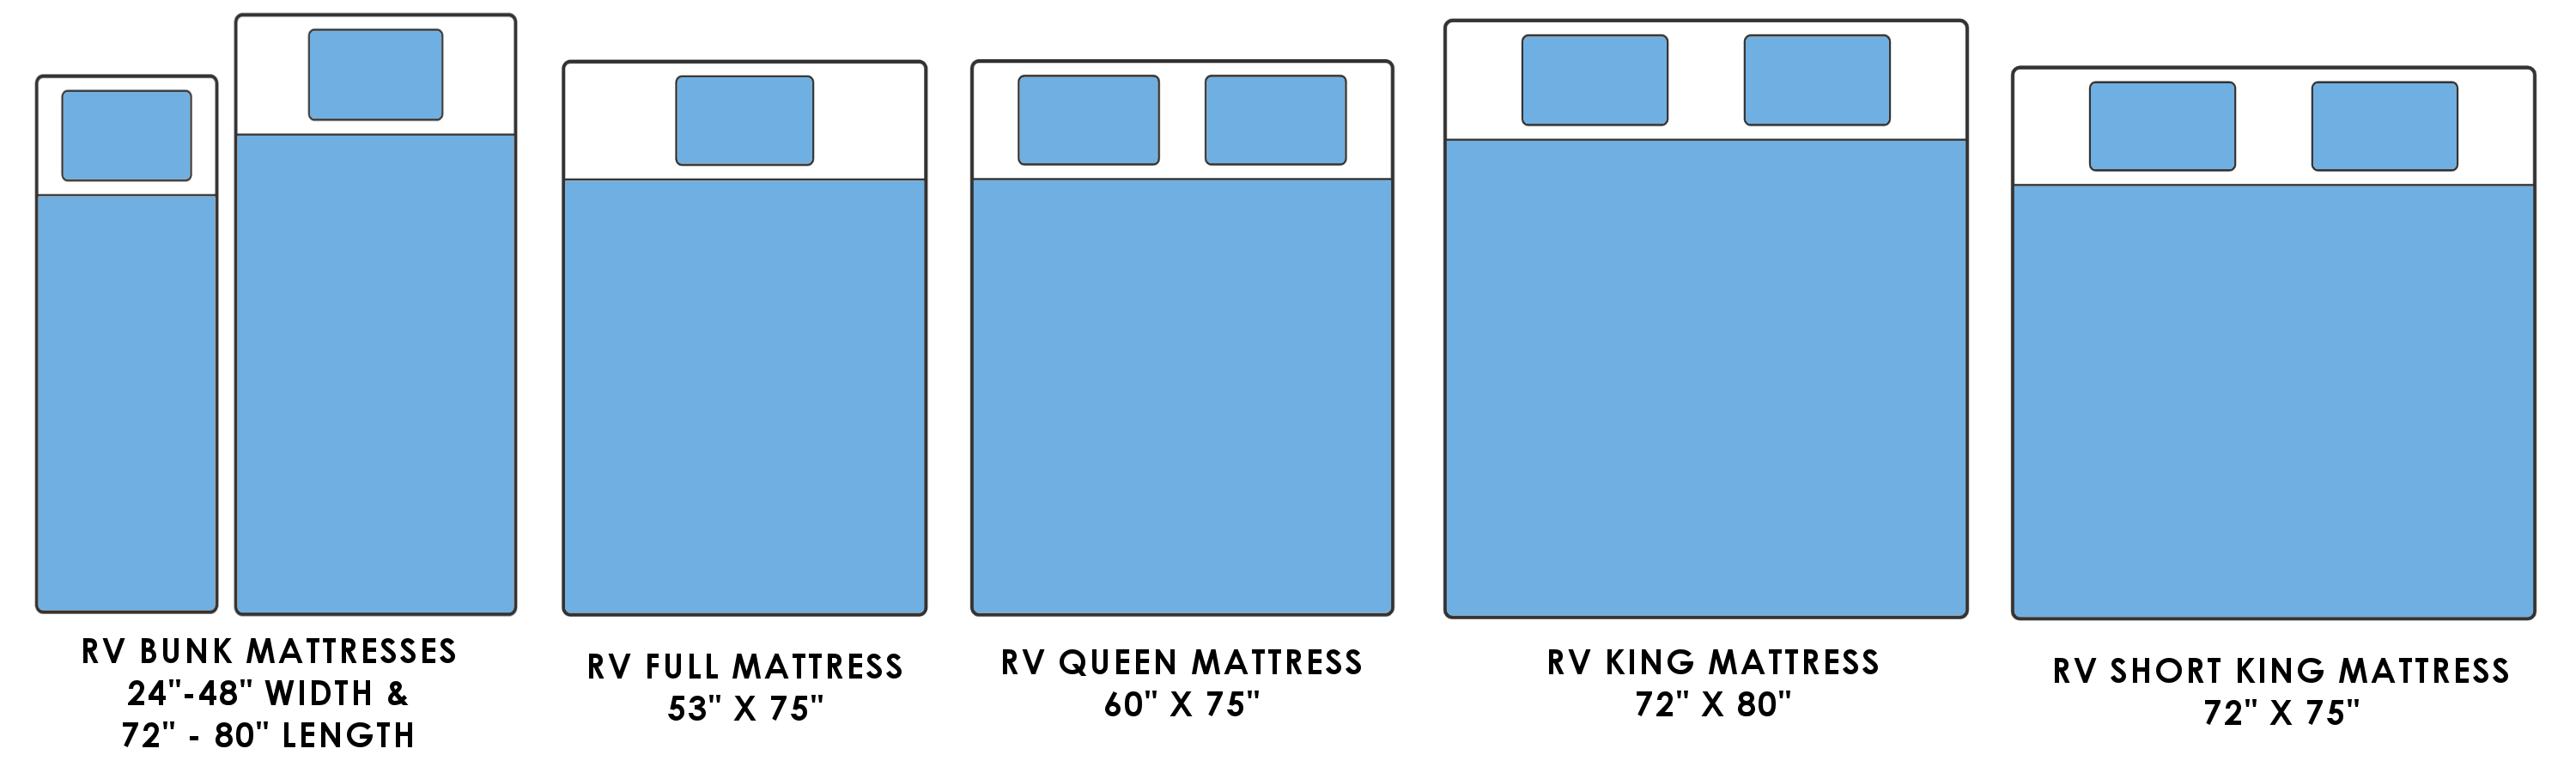 RV Mattress Size Chart